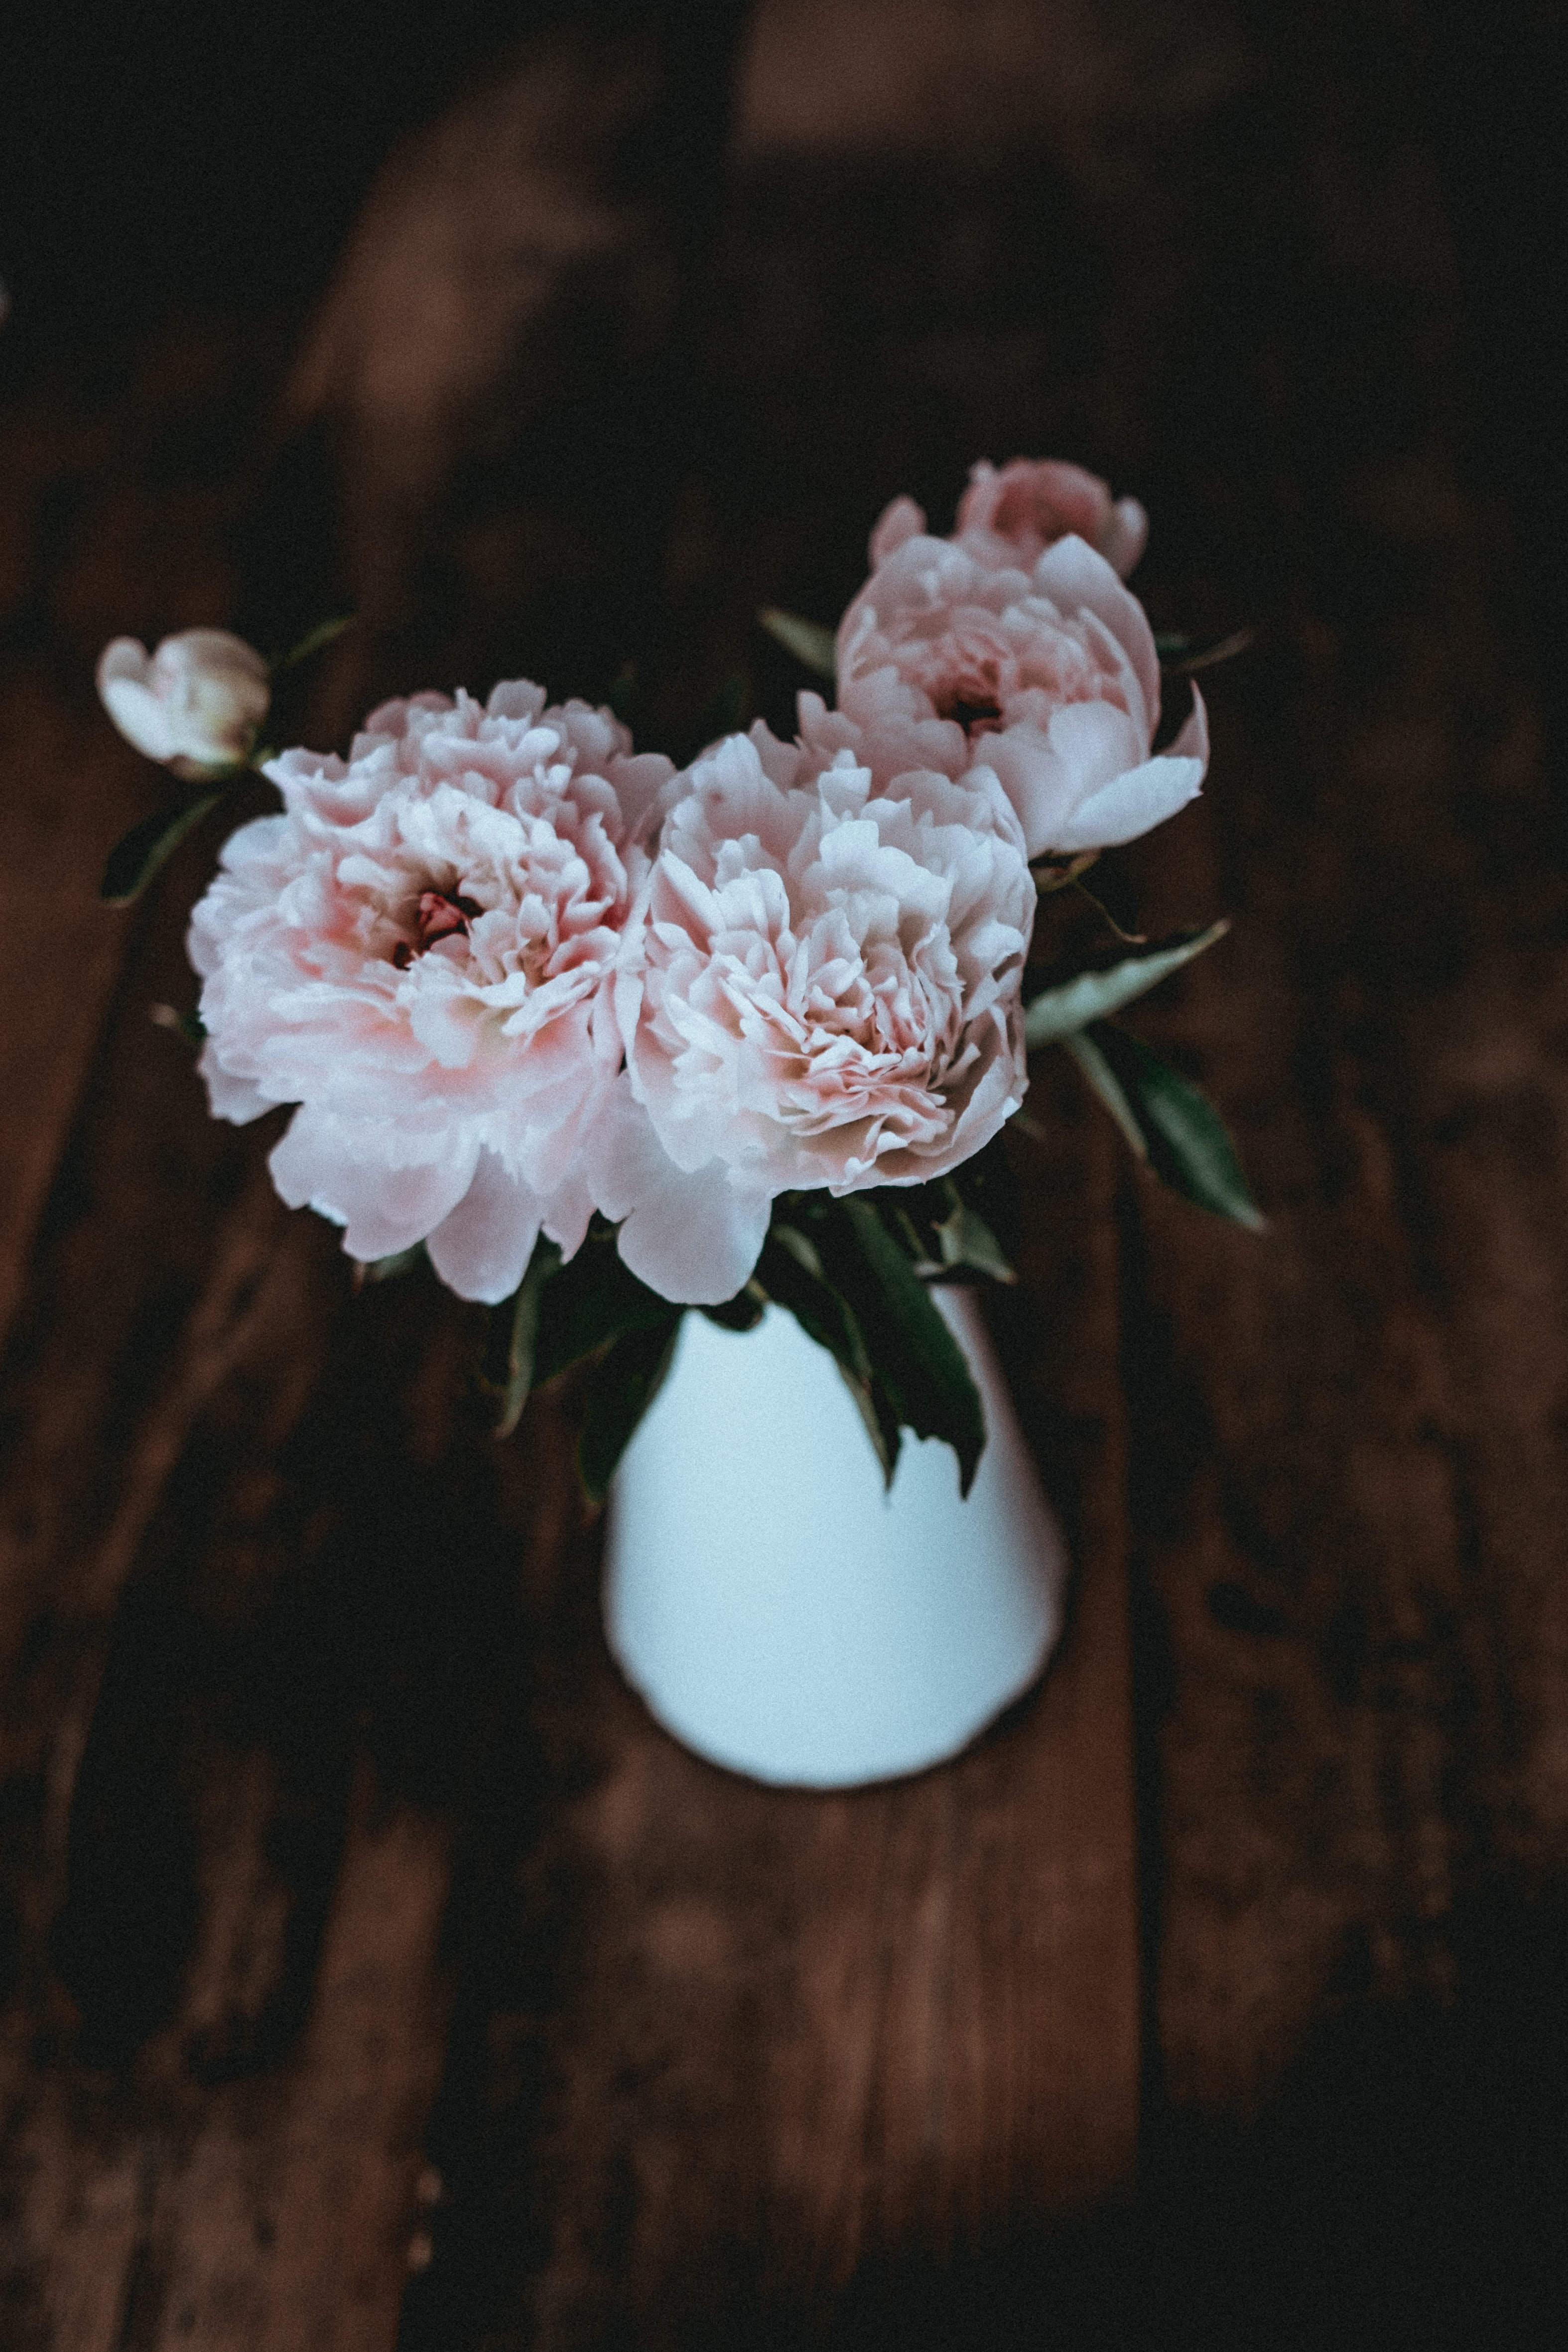 shallow focus photography of pink carnation flower table centerpiec